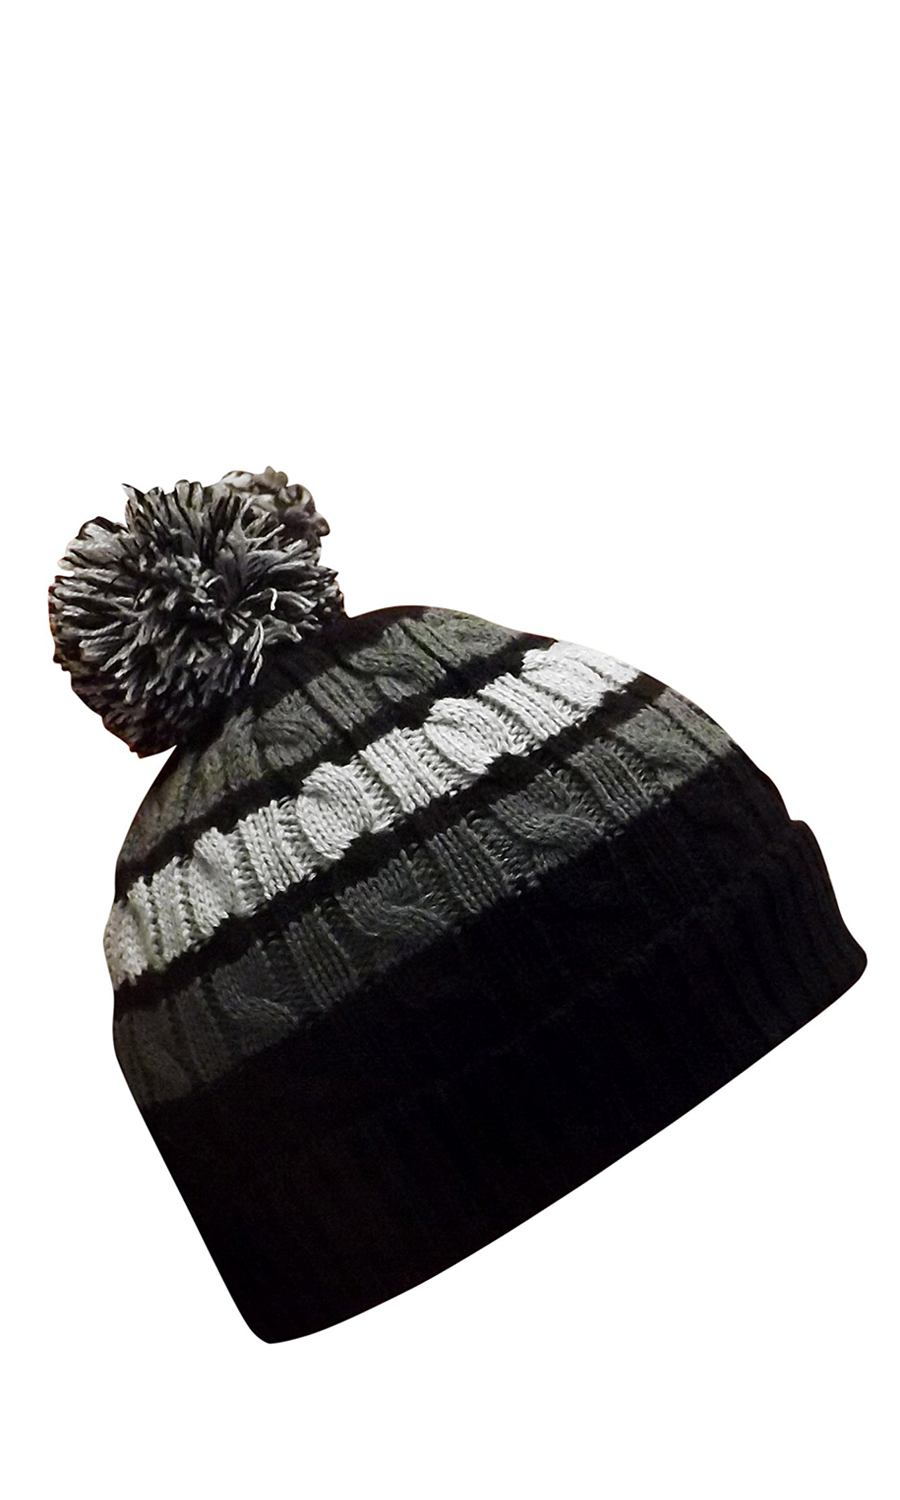 4ddf7d725 Classic Warm Adorable Kids Striped Cable Knit Winter Pom Pom Hat ...